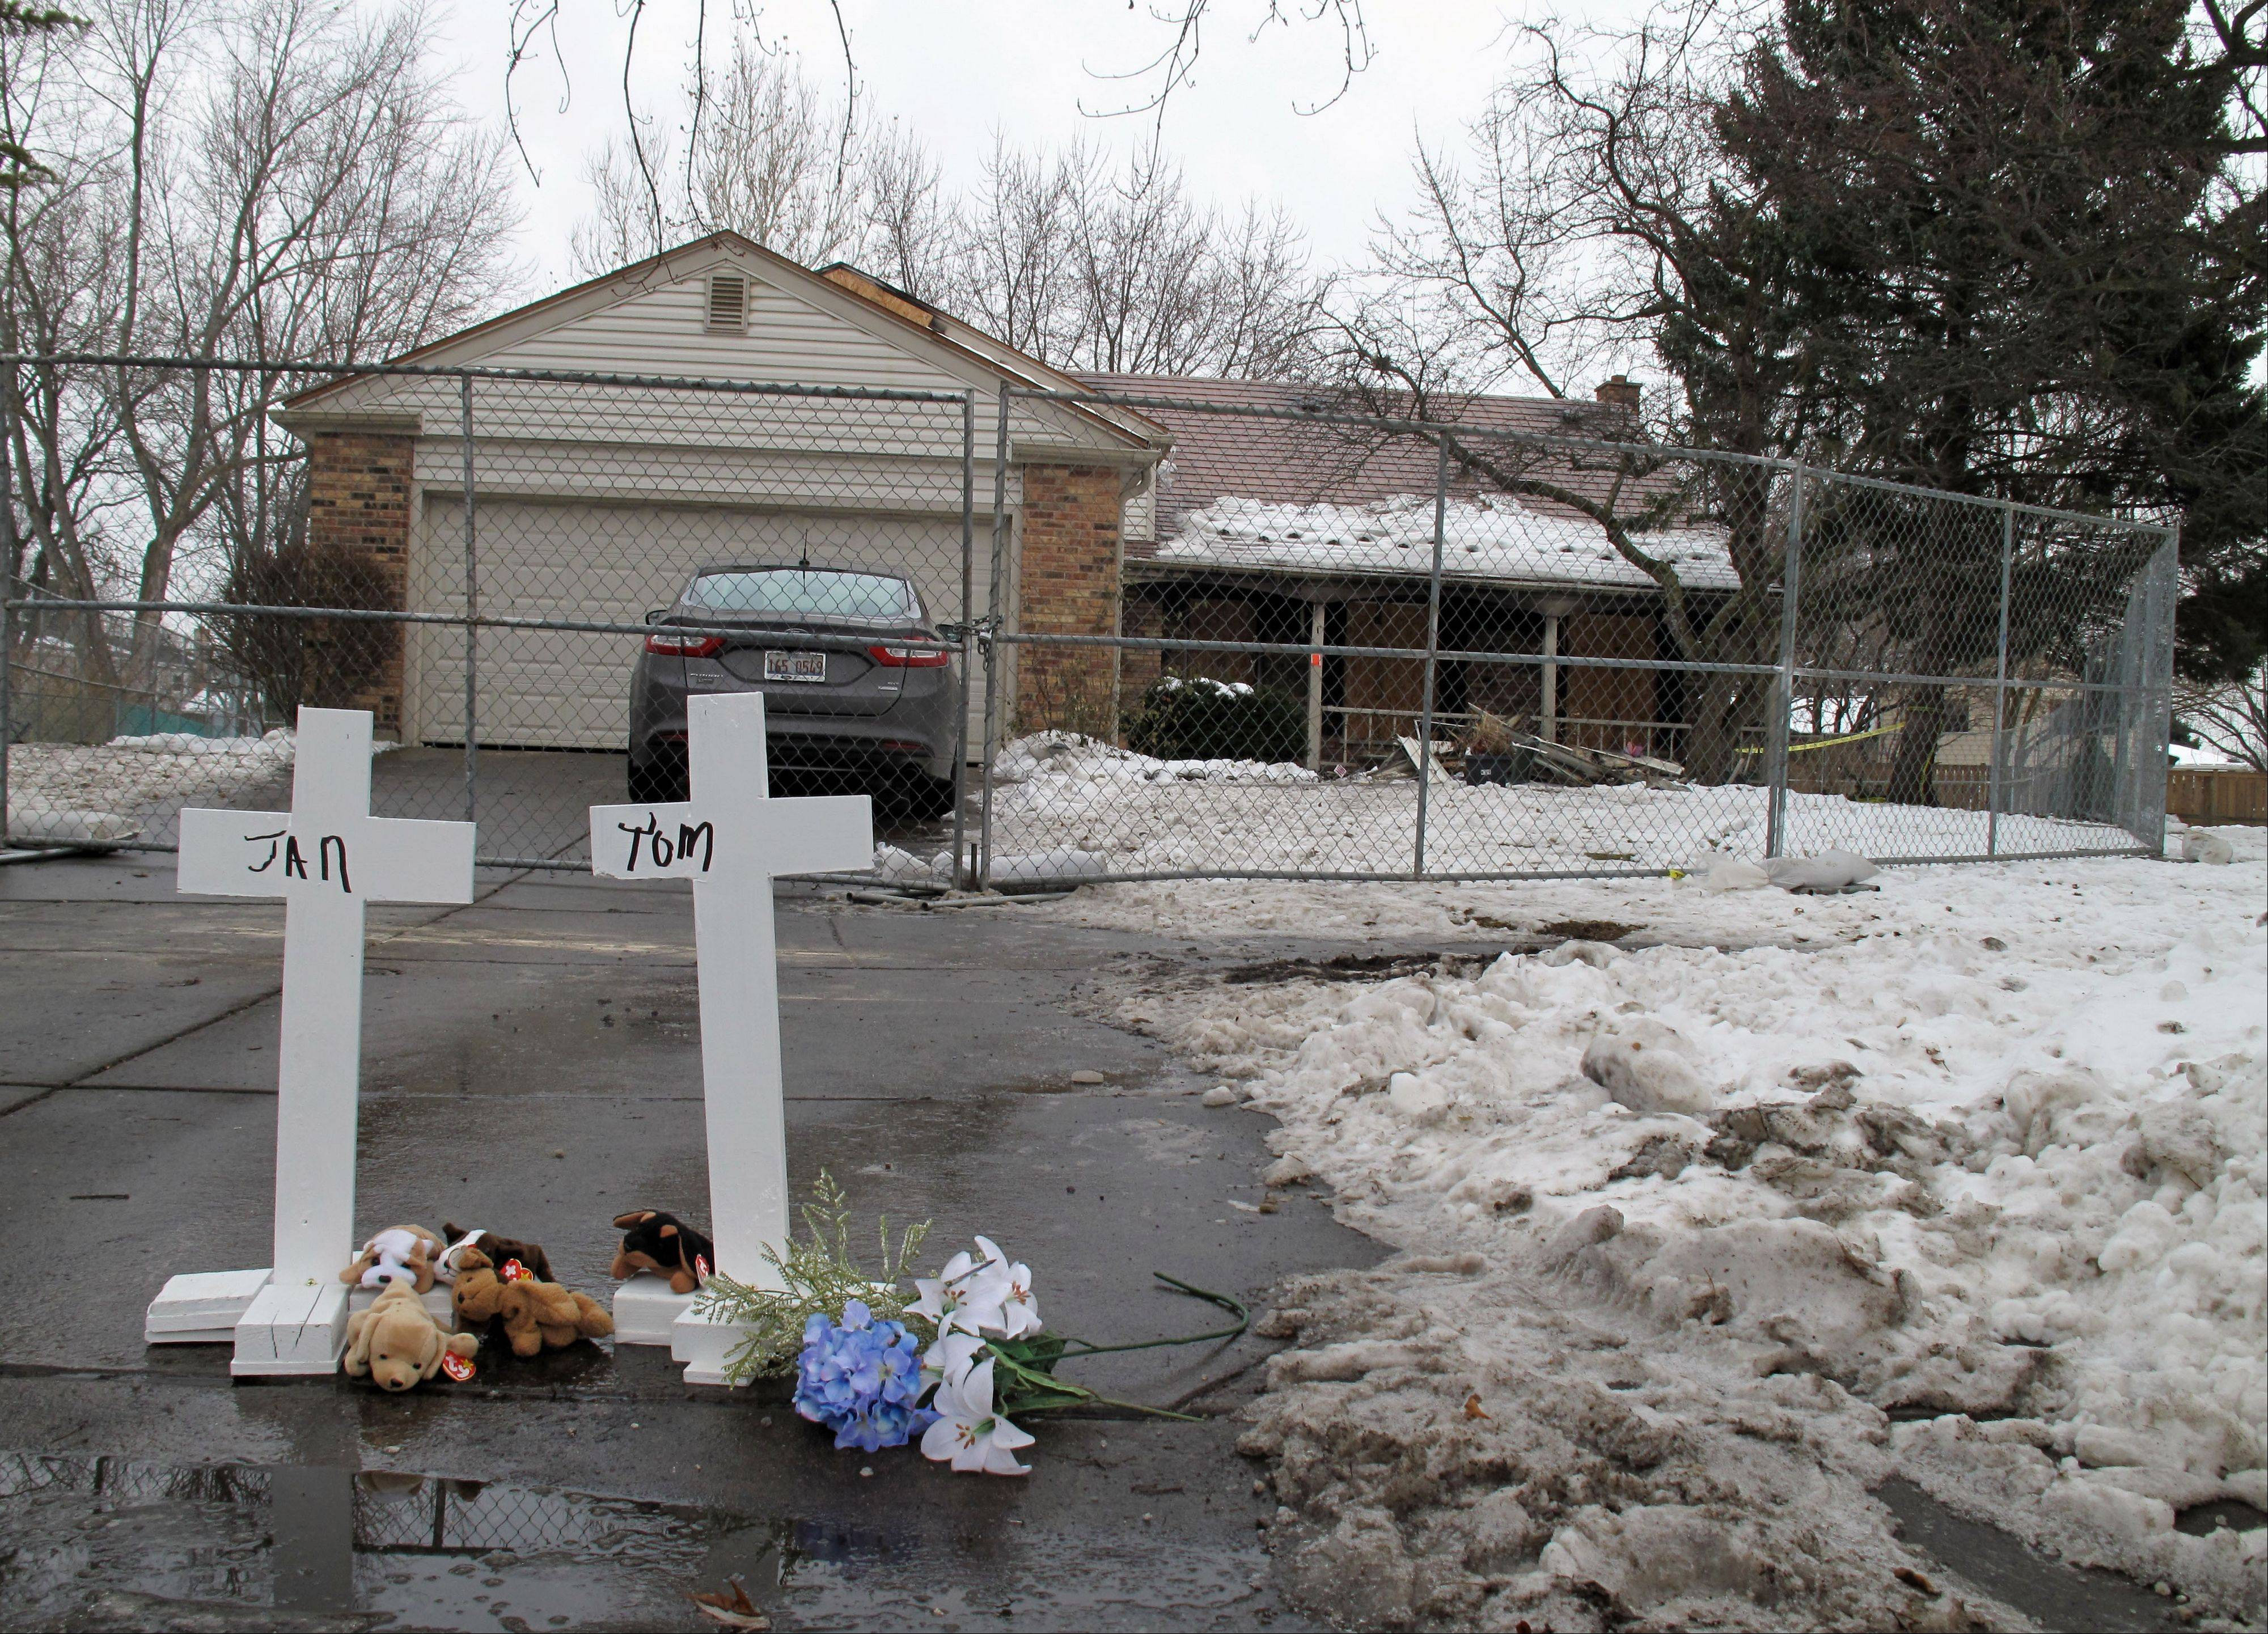 Crosses have been placed outside the Naperville home of Tom and Jan Lambert, where a fire Wednesday morning killed two and injured three others. The cause of the fire is still under investigation.